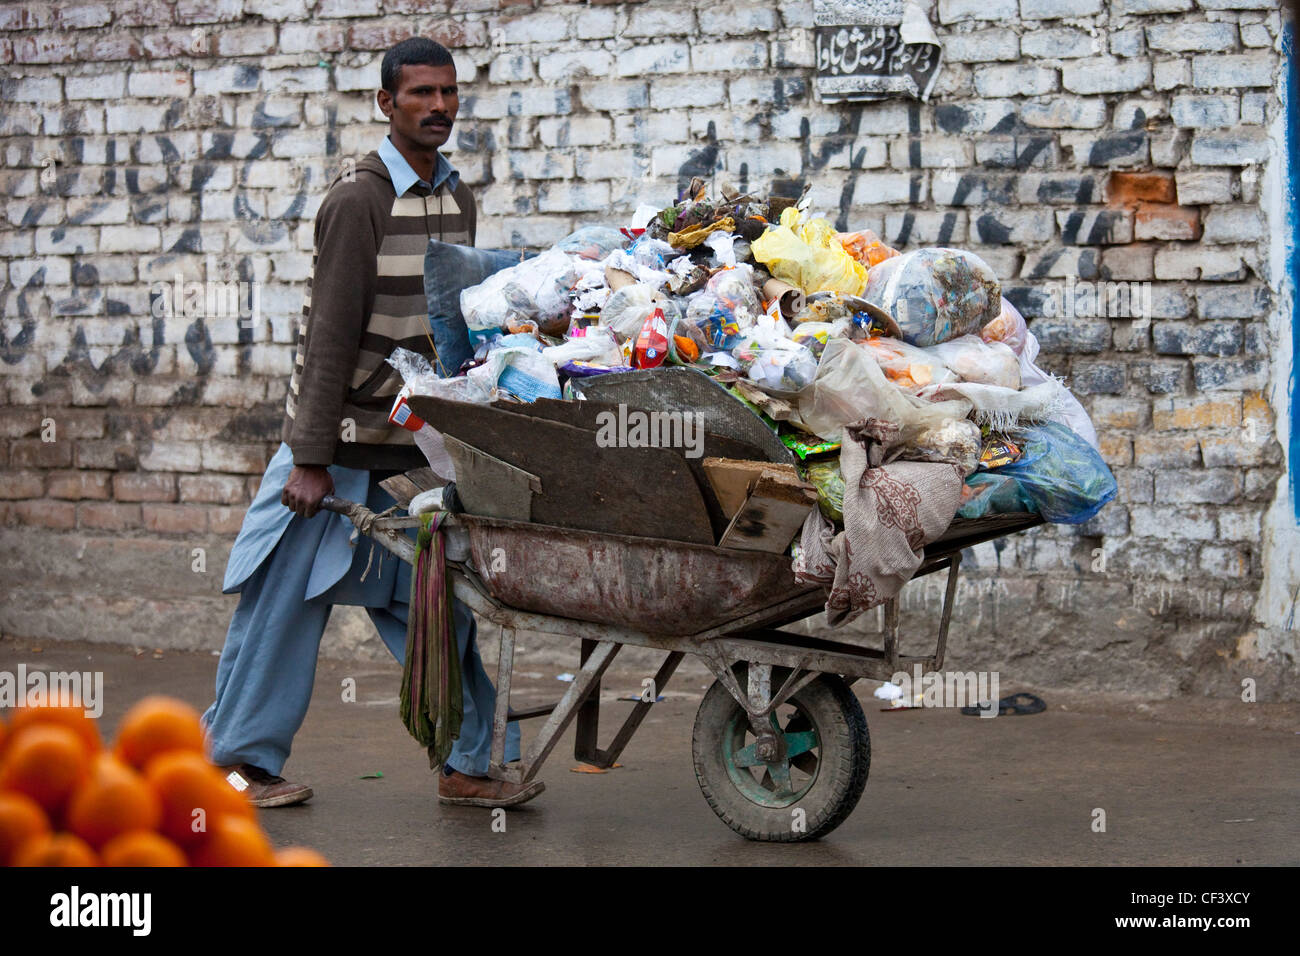 Rubbish removal, Islamabad, Pakistan - Stock Image